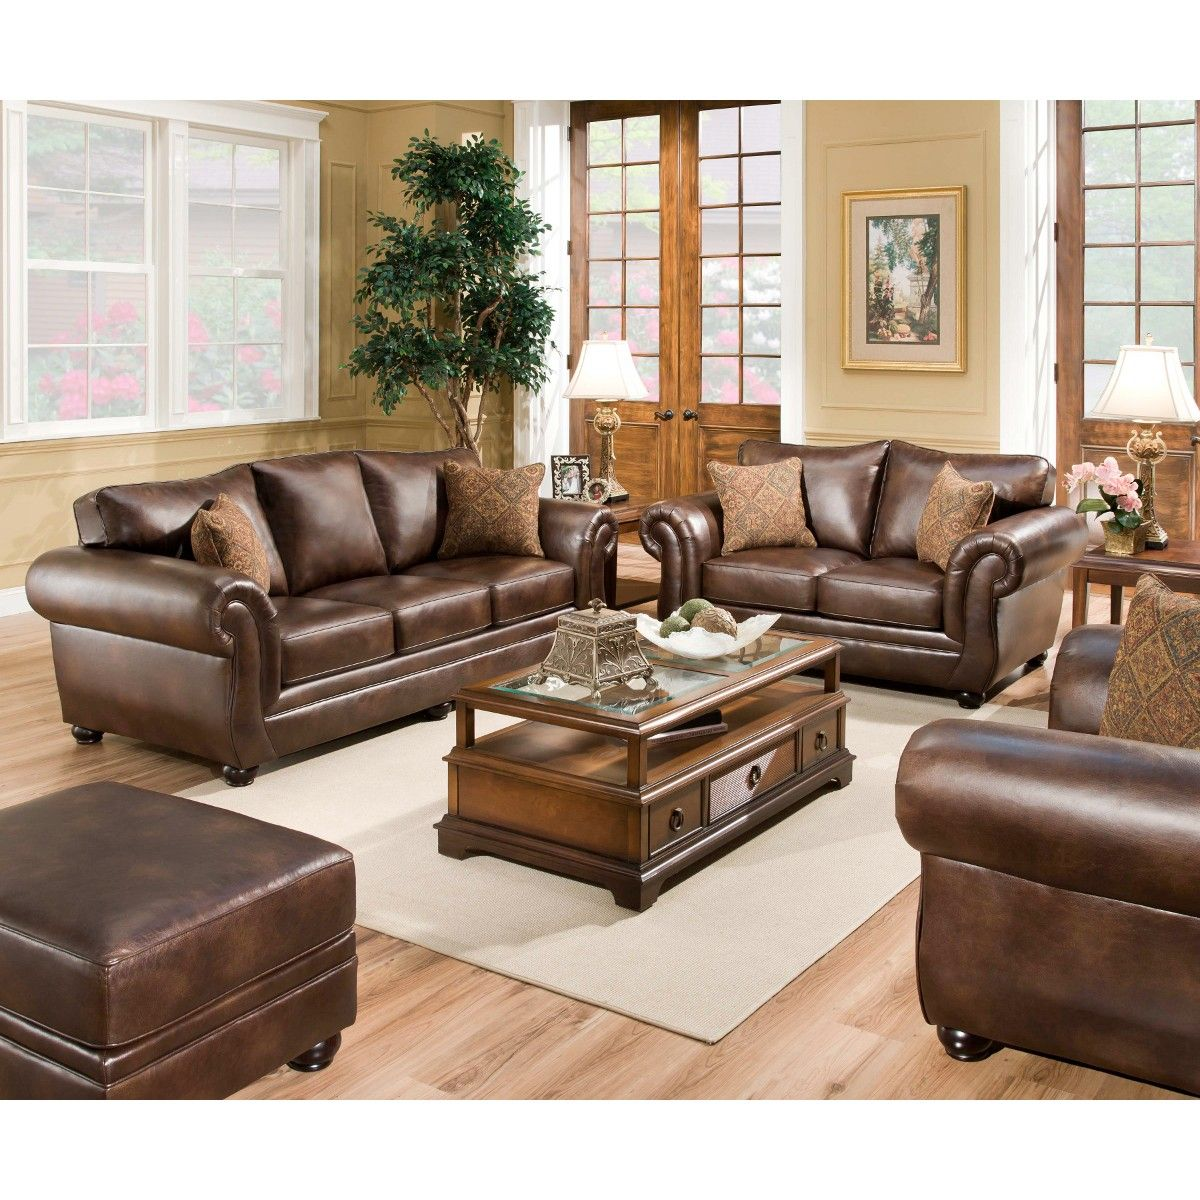 living room leather sofas home theater seating sofa united miracle 4280mirsofa conn 39s